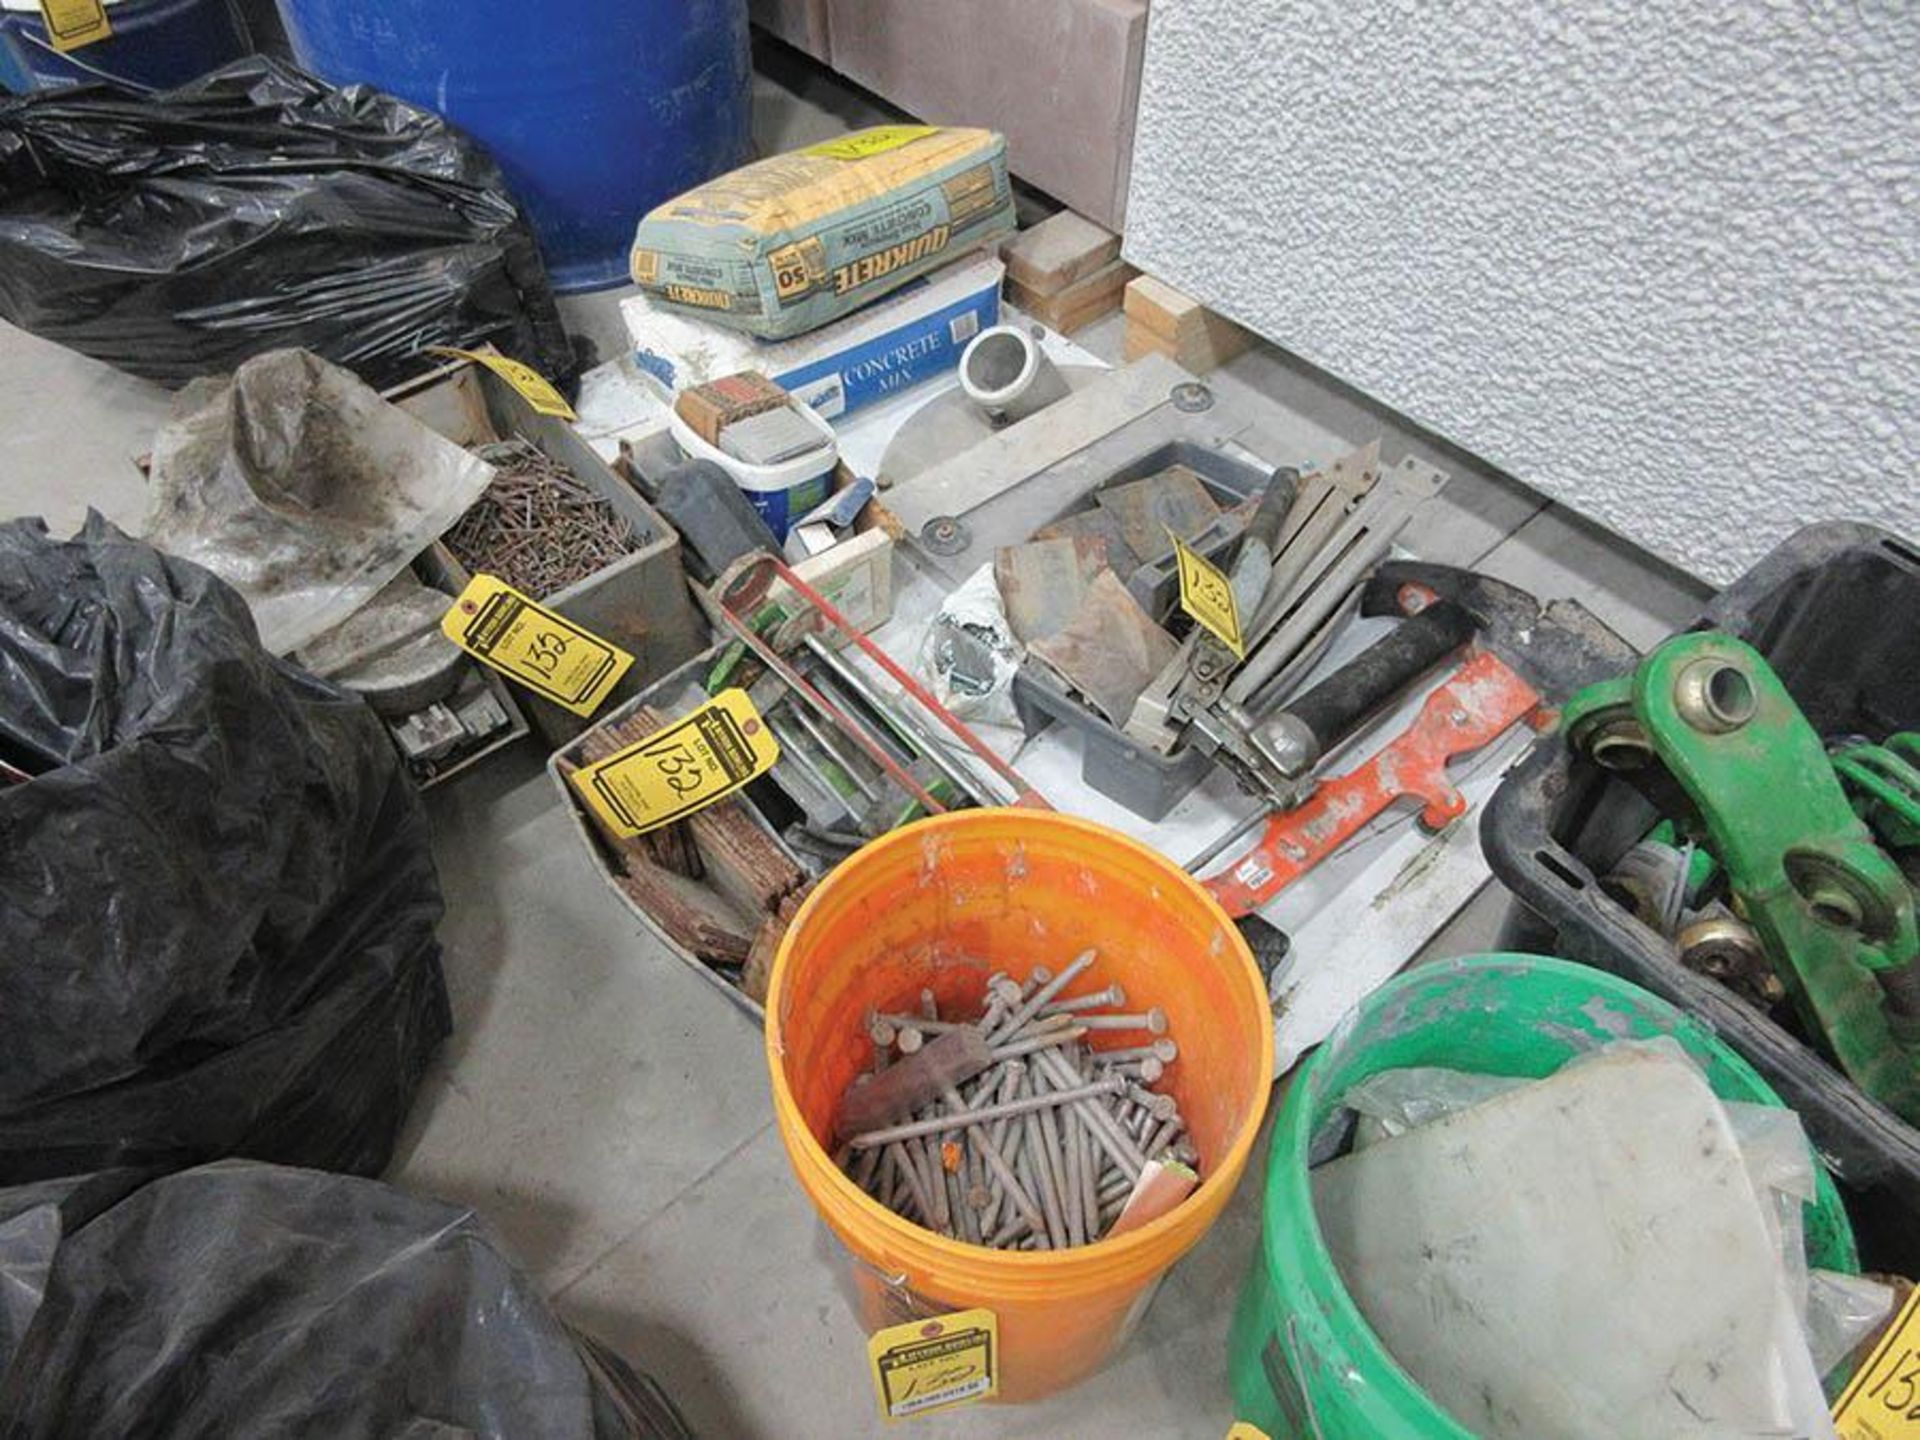 JOHN DEERE PARTS,SPIKES, NAILS, GREASE GUN, OTHER